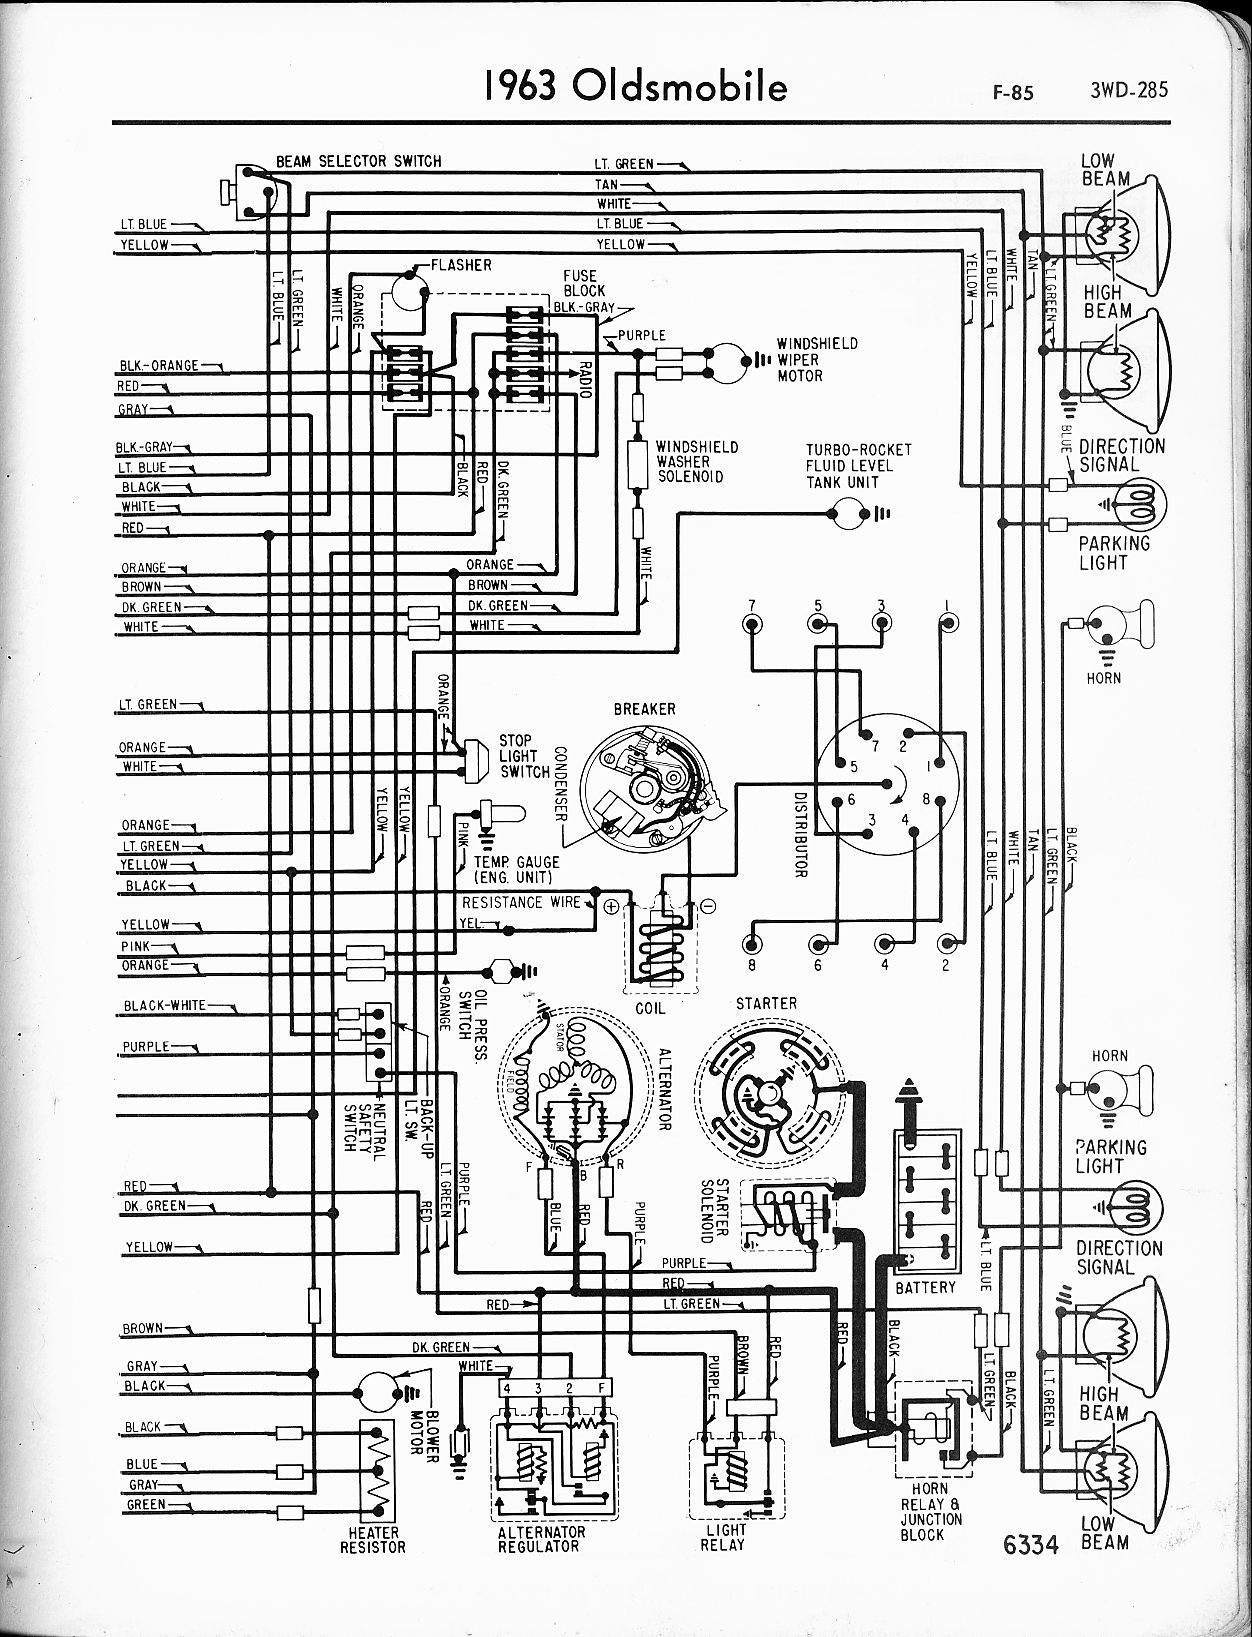 1999 Oldsmobile Intrigue Wiring Diagram Wiring Diagram Dat